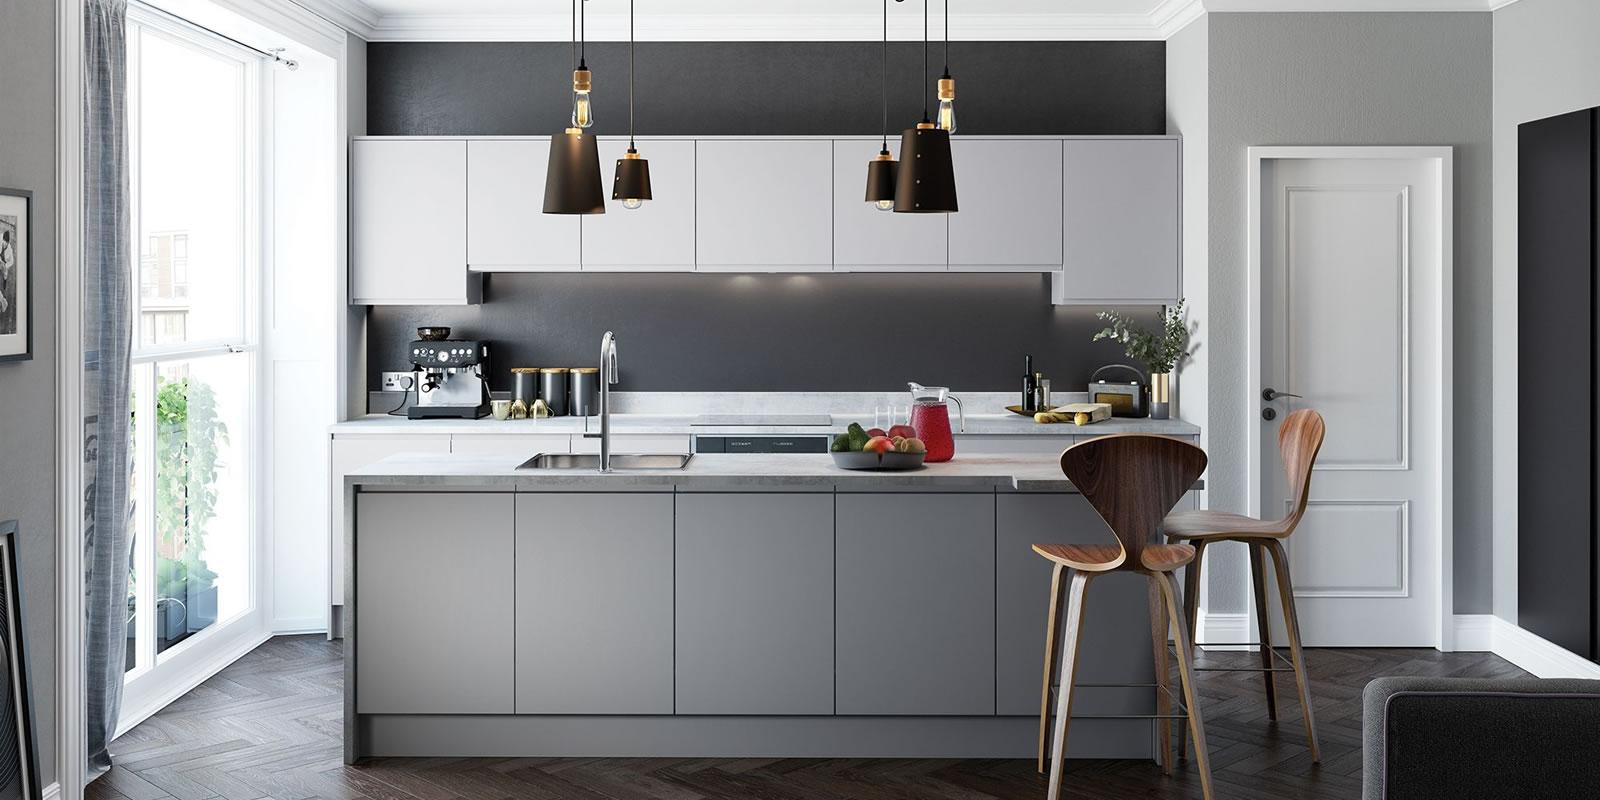 mya bedrooms and kitchens Wolverhampton Strada Matte Dust Grey slider background image